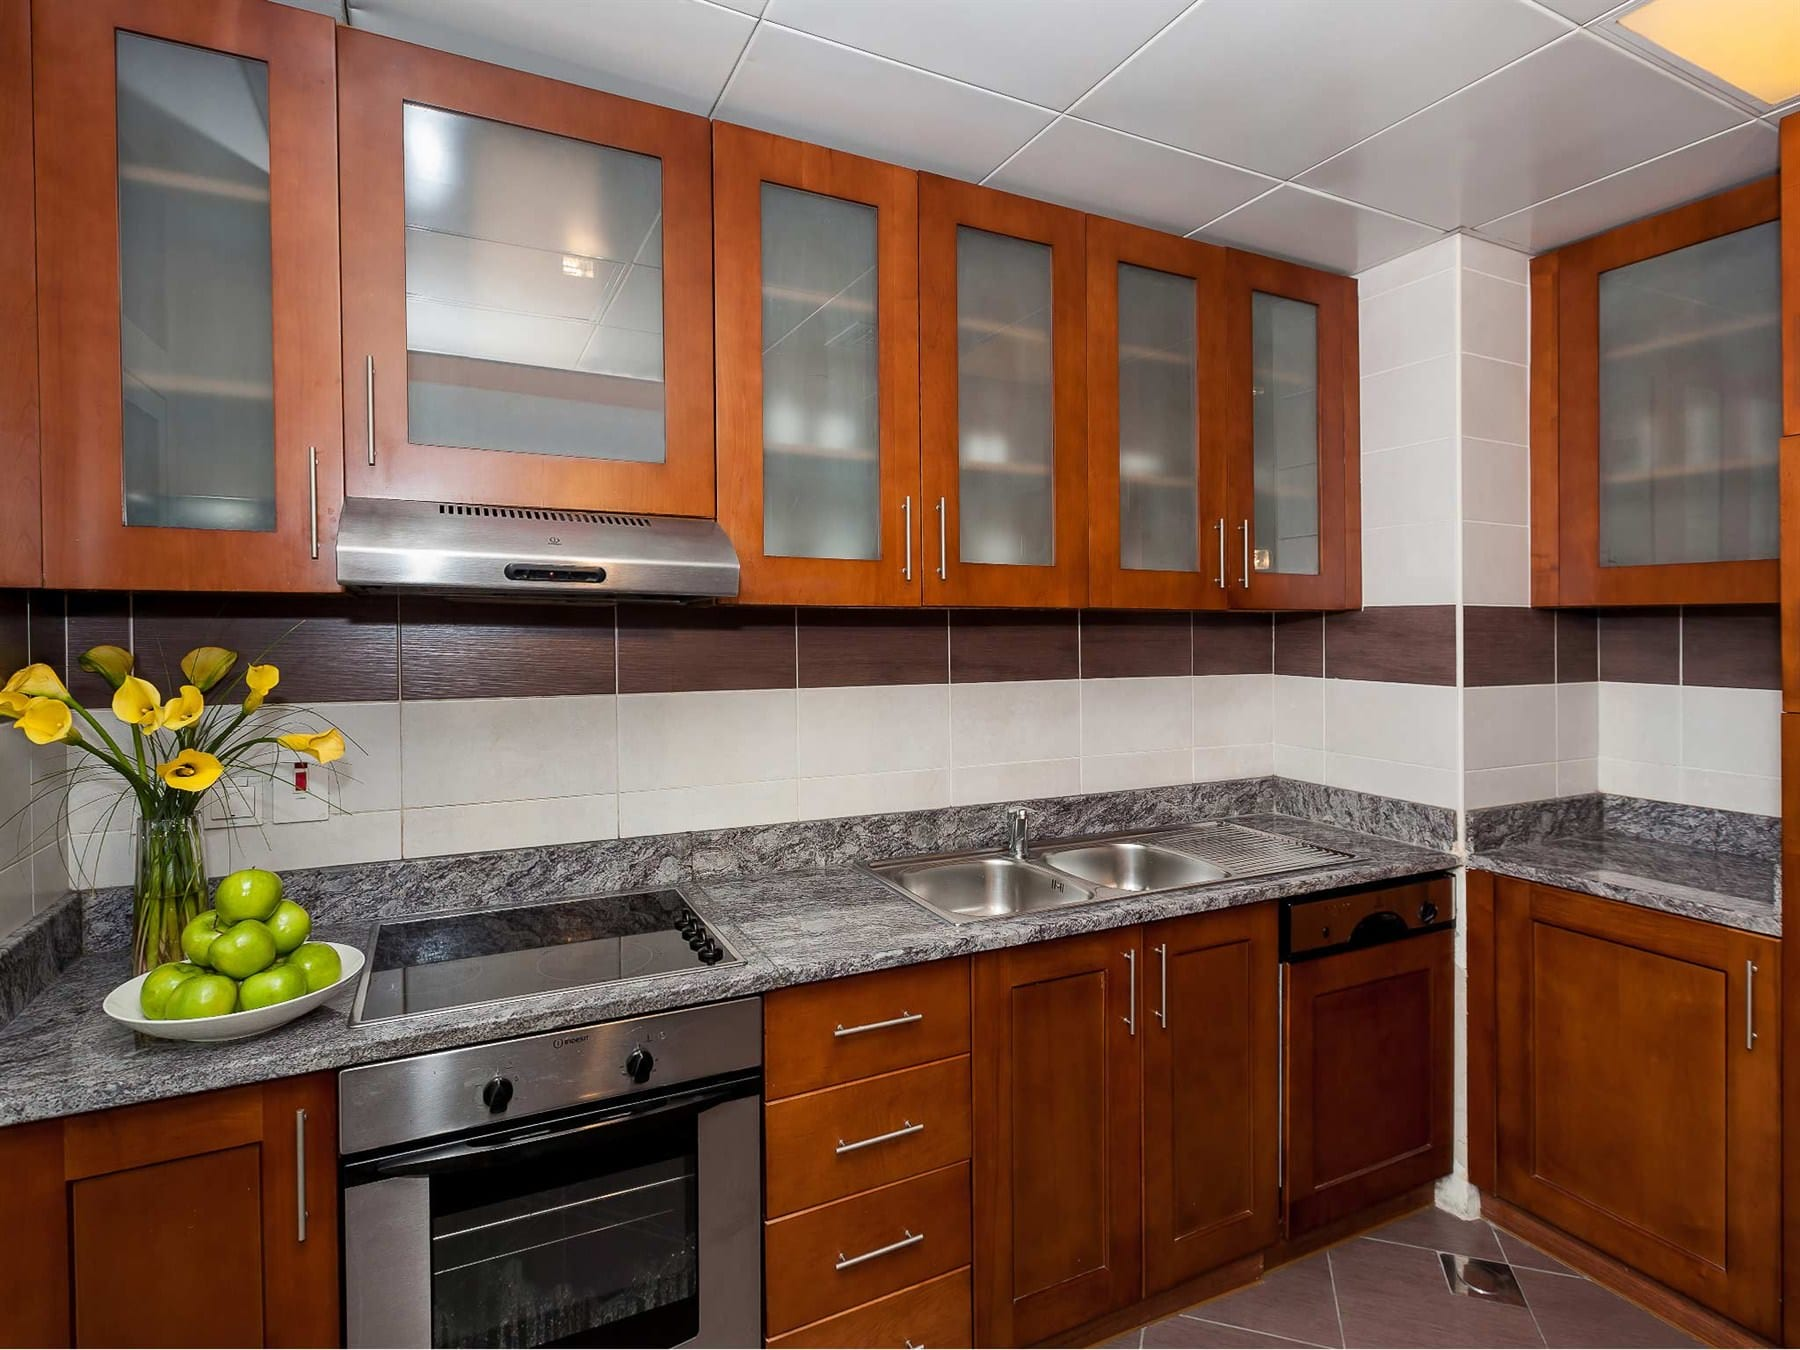 2BHK Park View KItchen 2